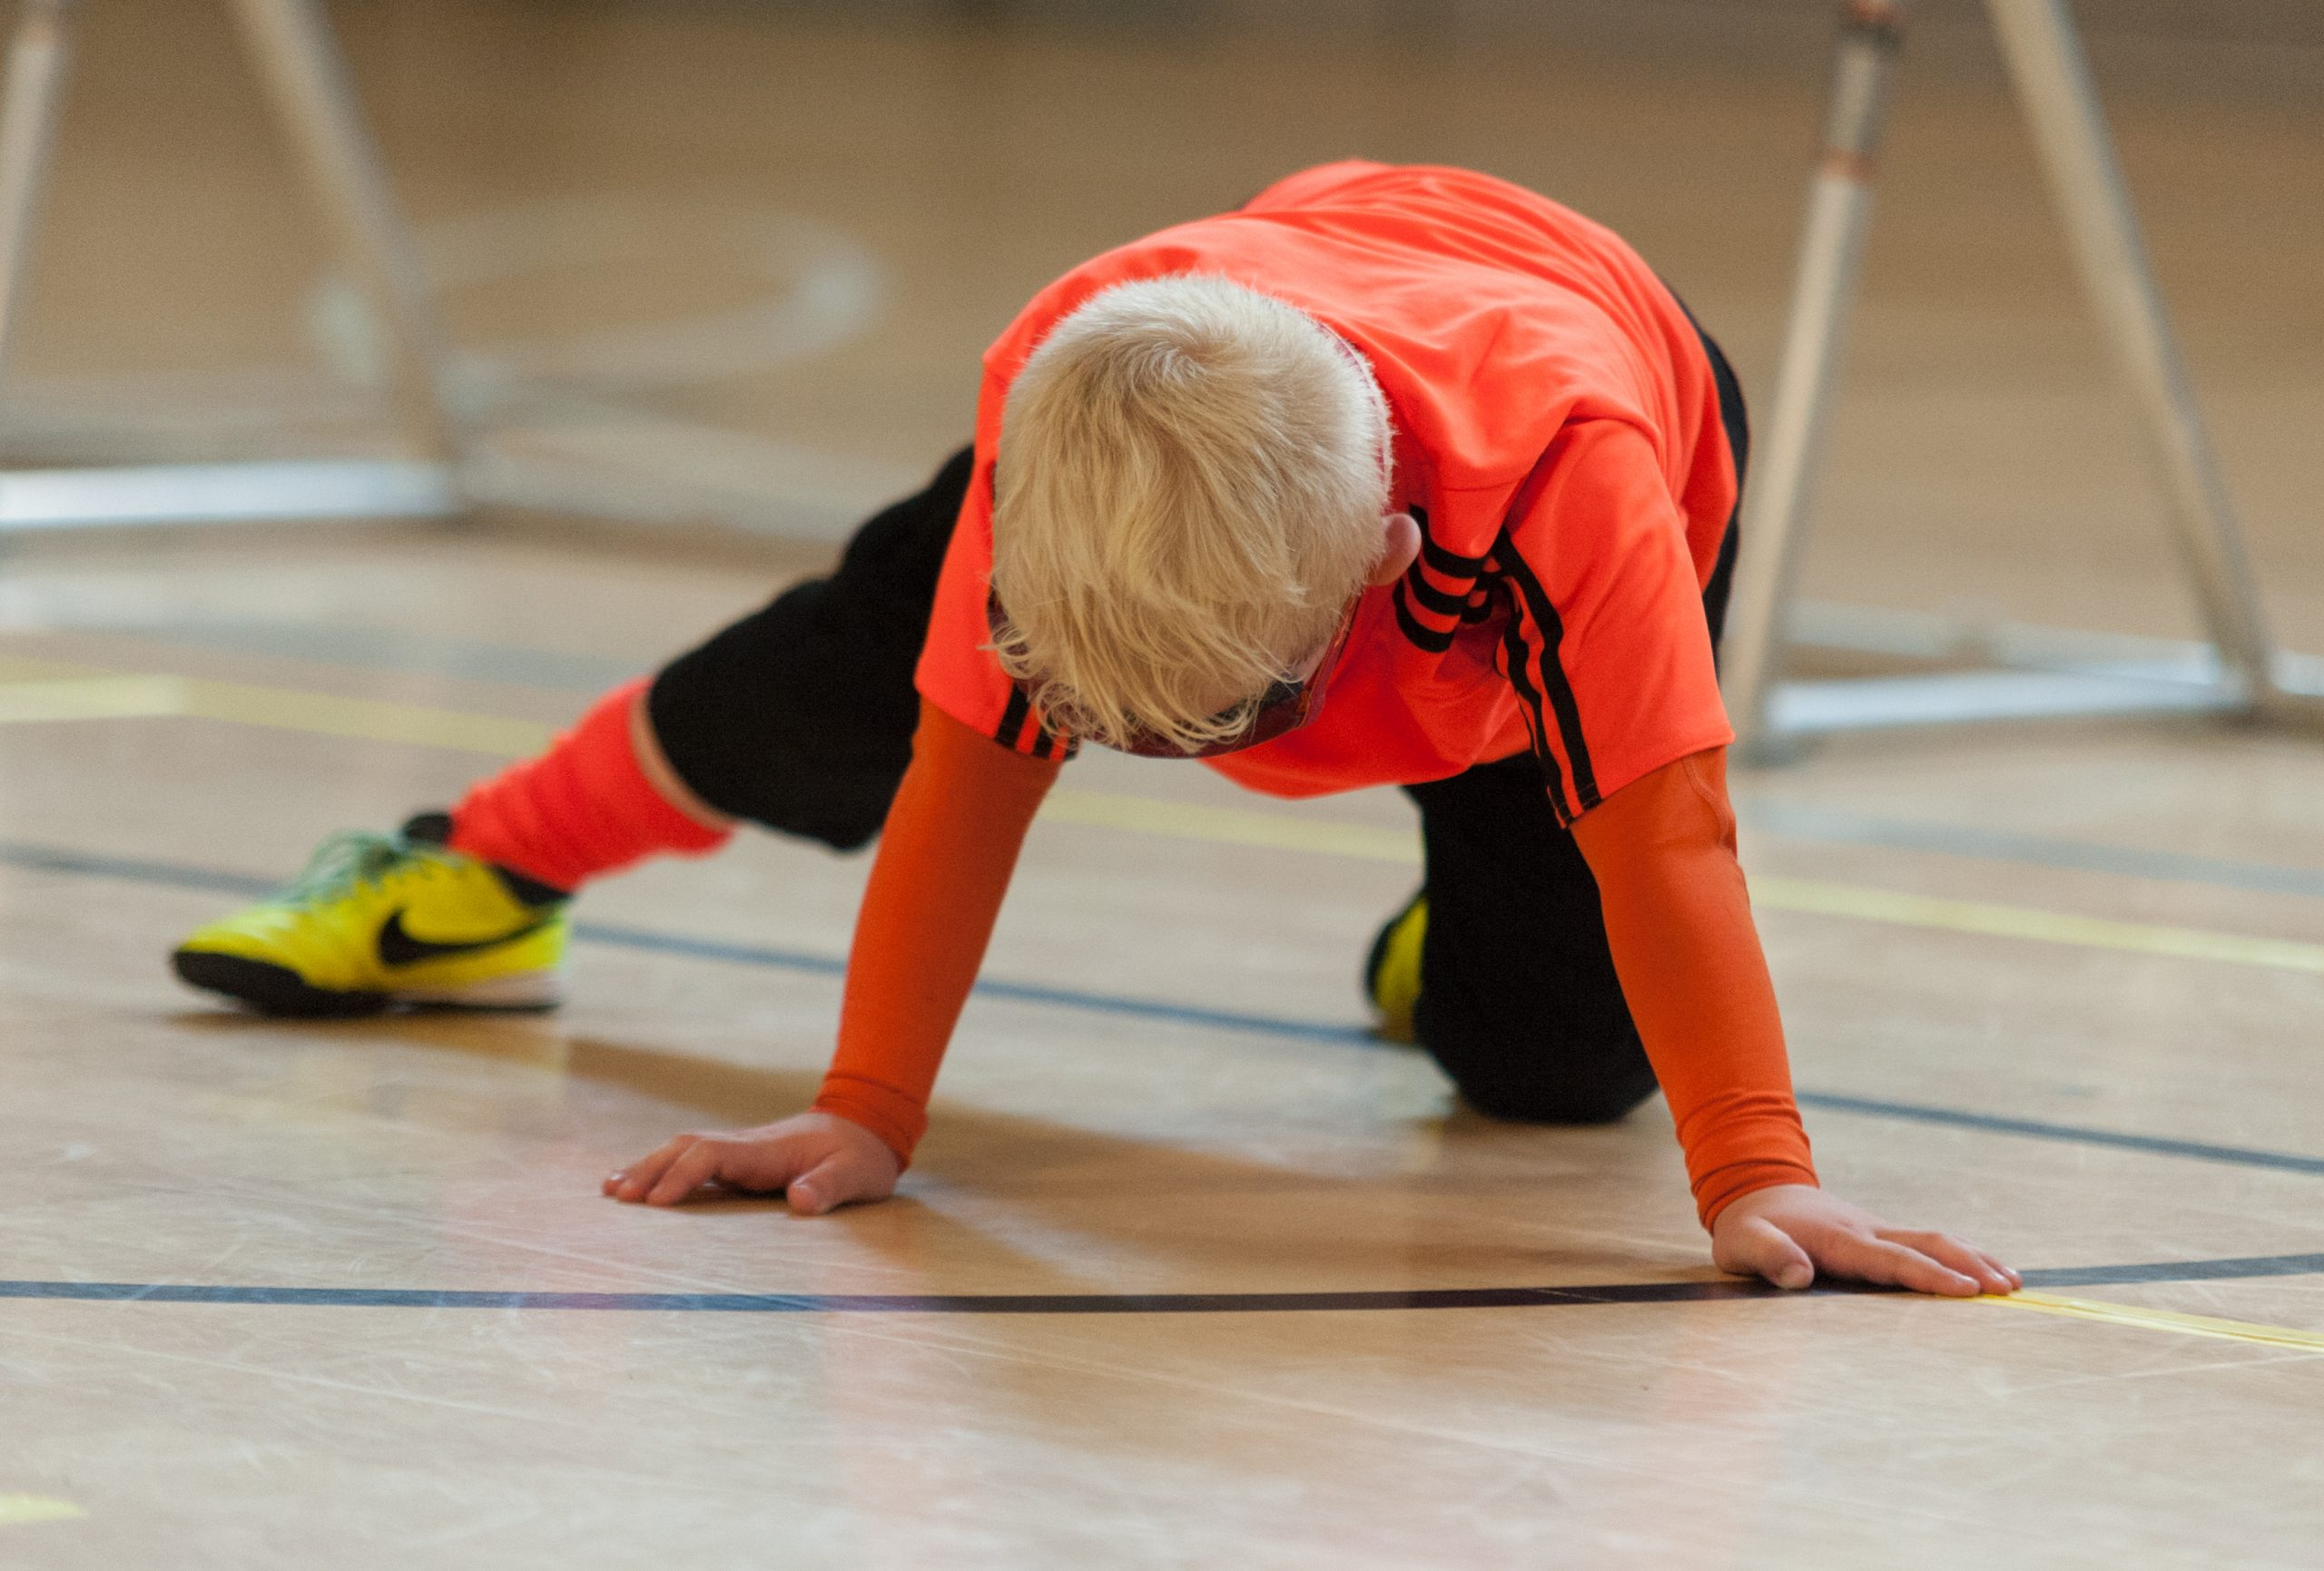 A young player in an orange shirt finding their way back to their position on their hands and knees on court.